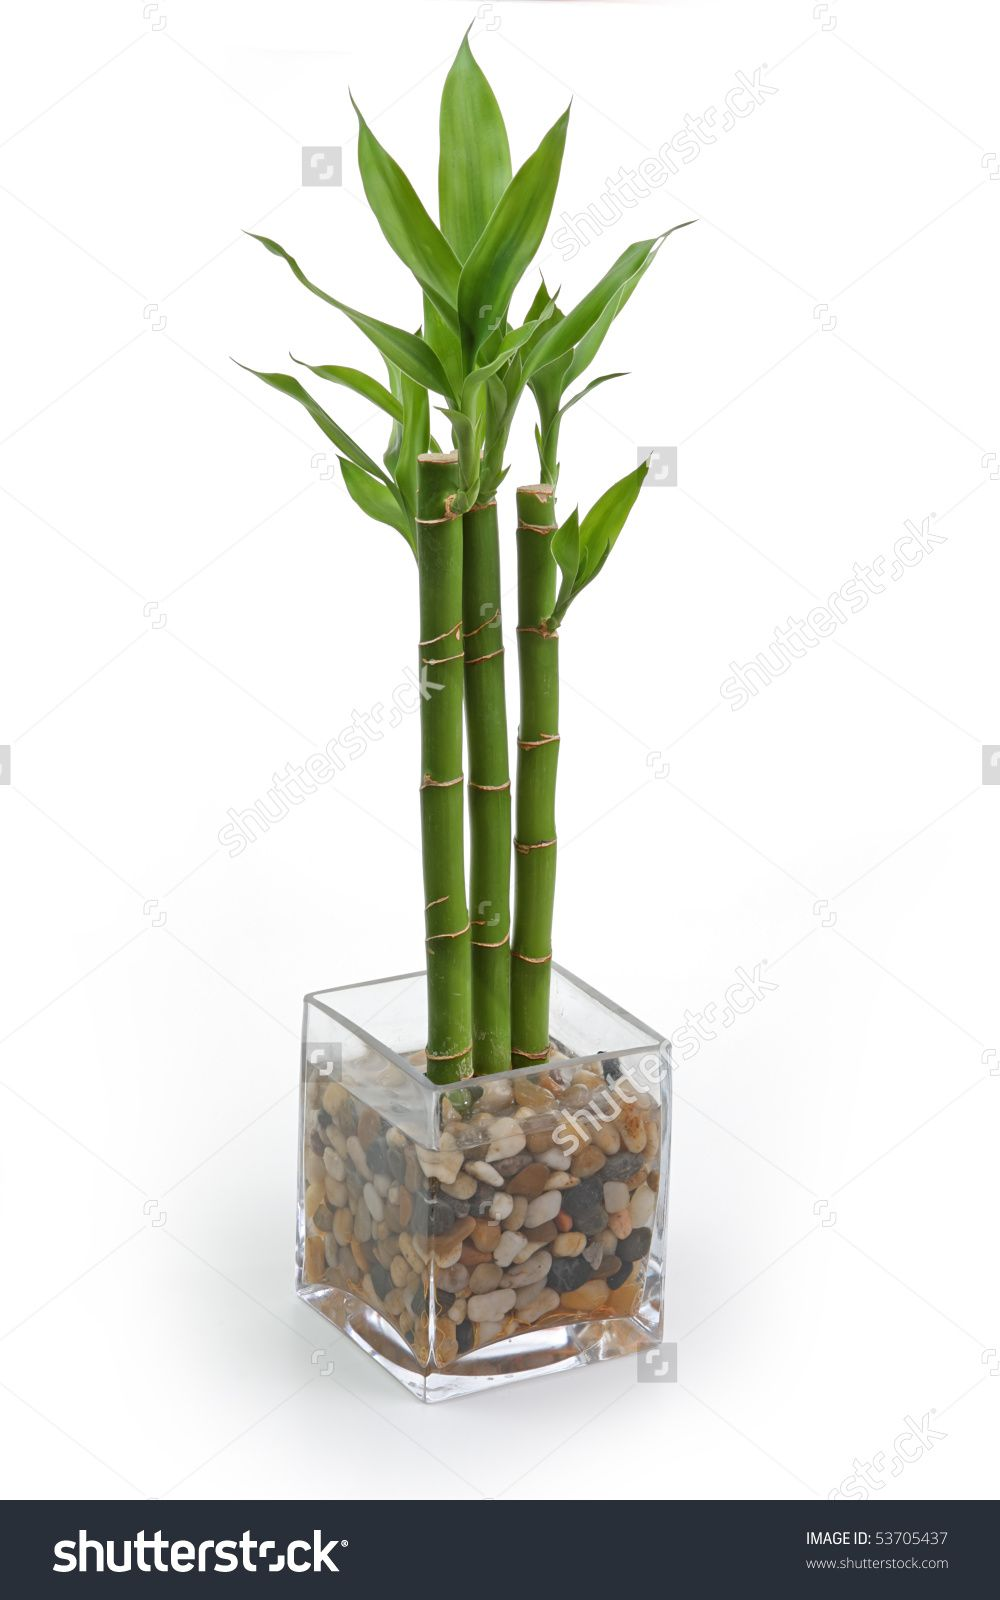 Image result for bamboo plant plants pinterest bamboo plants image result for bamboo plant reviewsmspy